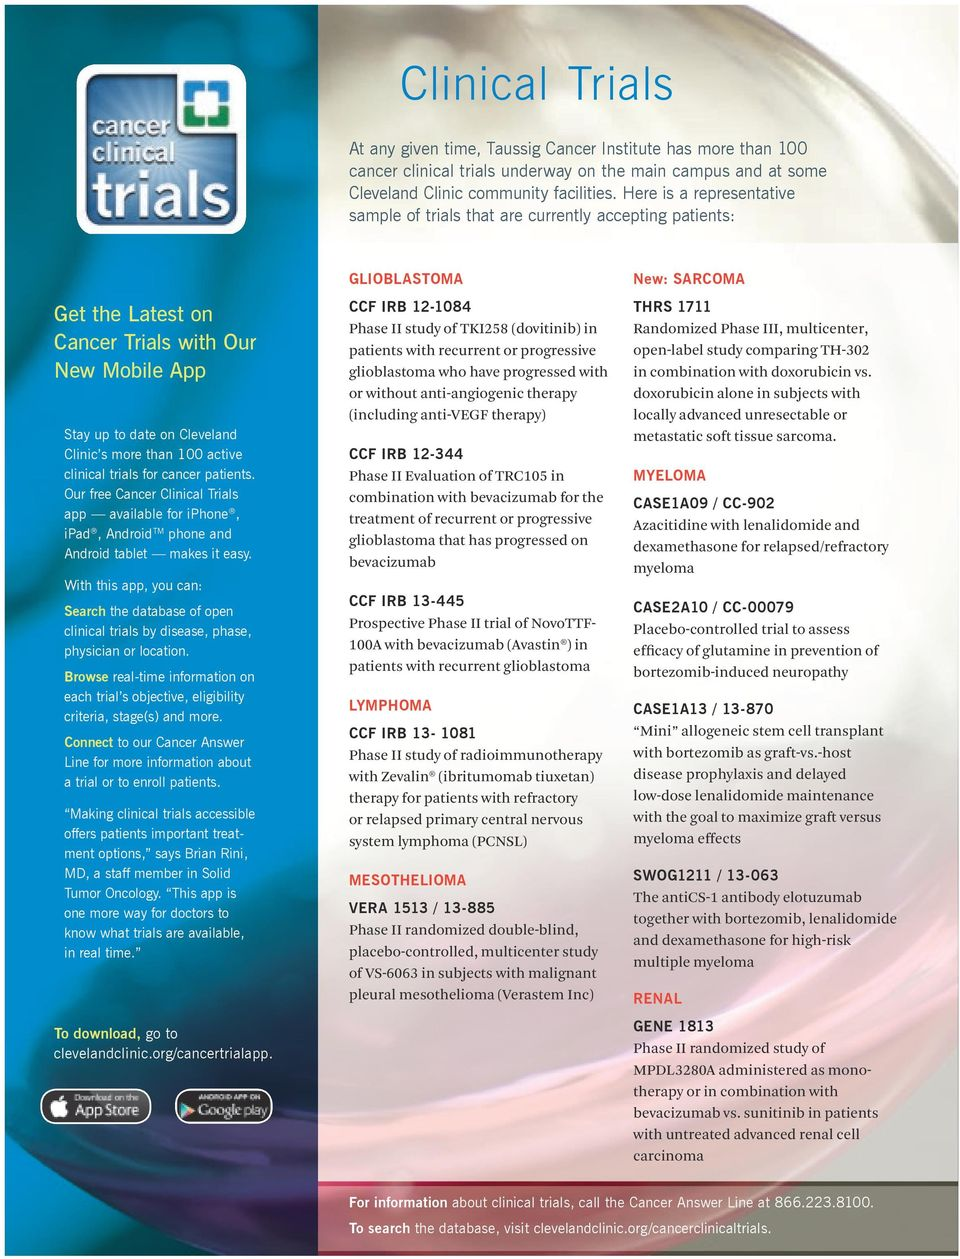 clinical trials for cancer patients. Our free Cancer Clinical Trials app available for iphone, ipad, Android TM phone and Android tablet makes it easy.